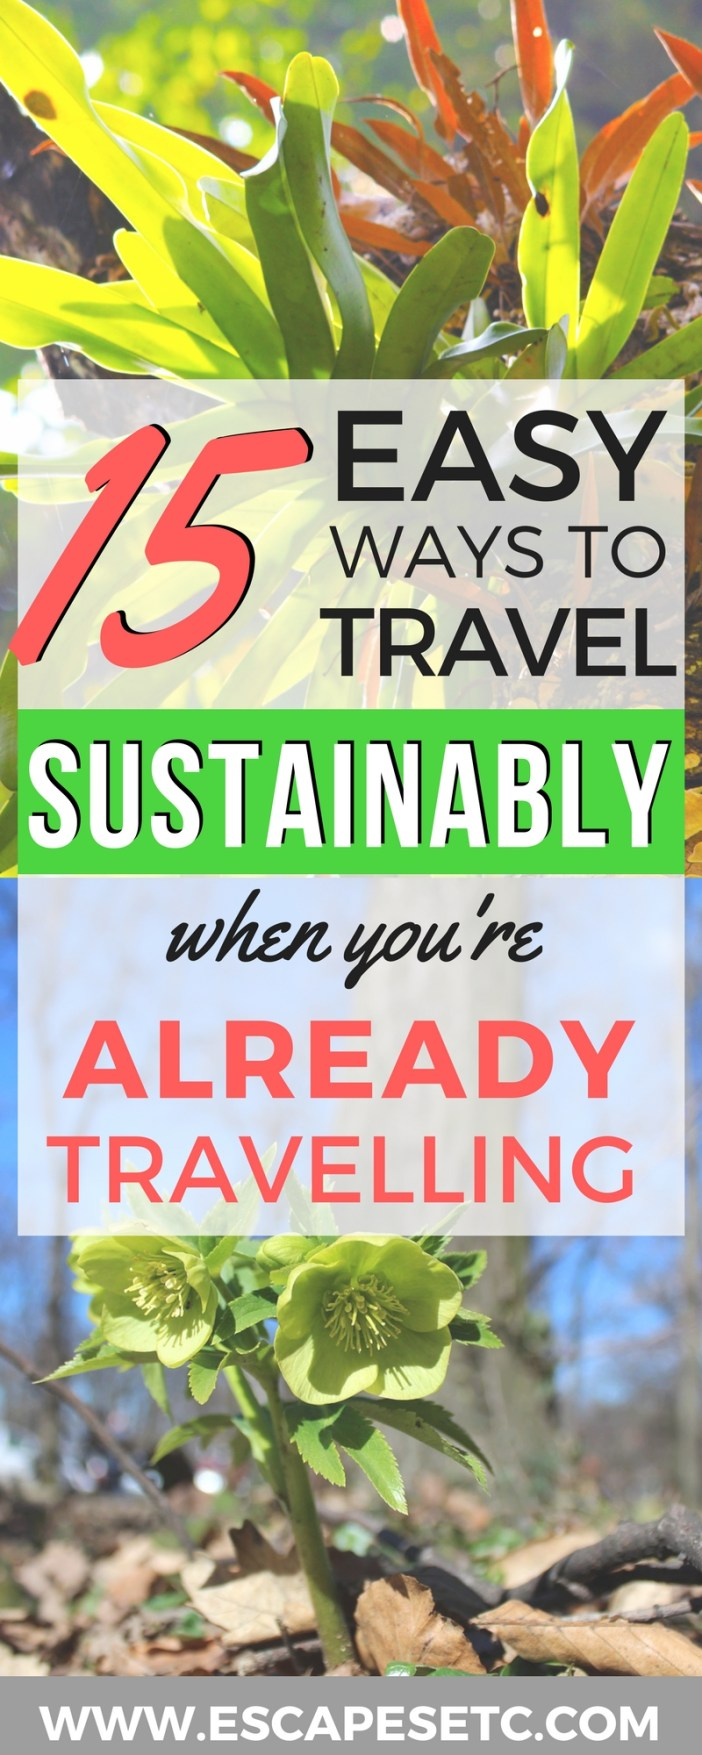 Do you want to learn how you can travel in a more eco-friendly way? Here are 15 easy sustainable travel tips that you can use even if you're already travelling. #sustainabletravel #ecotourism #traveltips #earthday